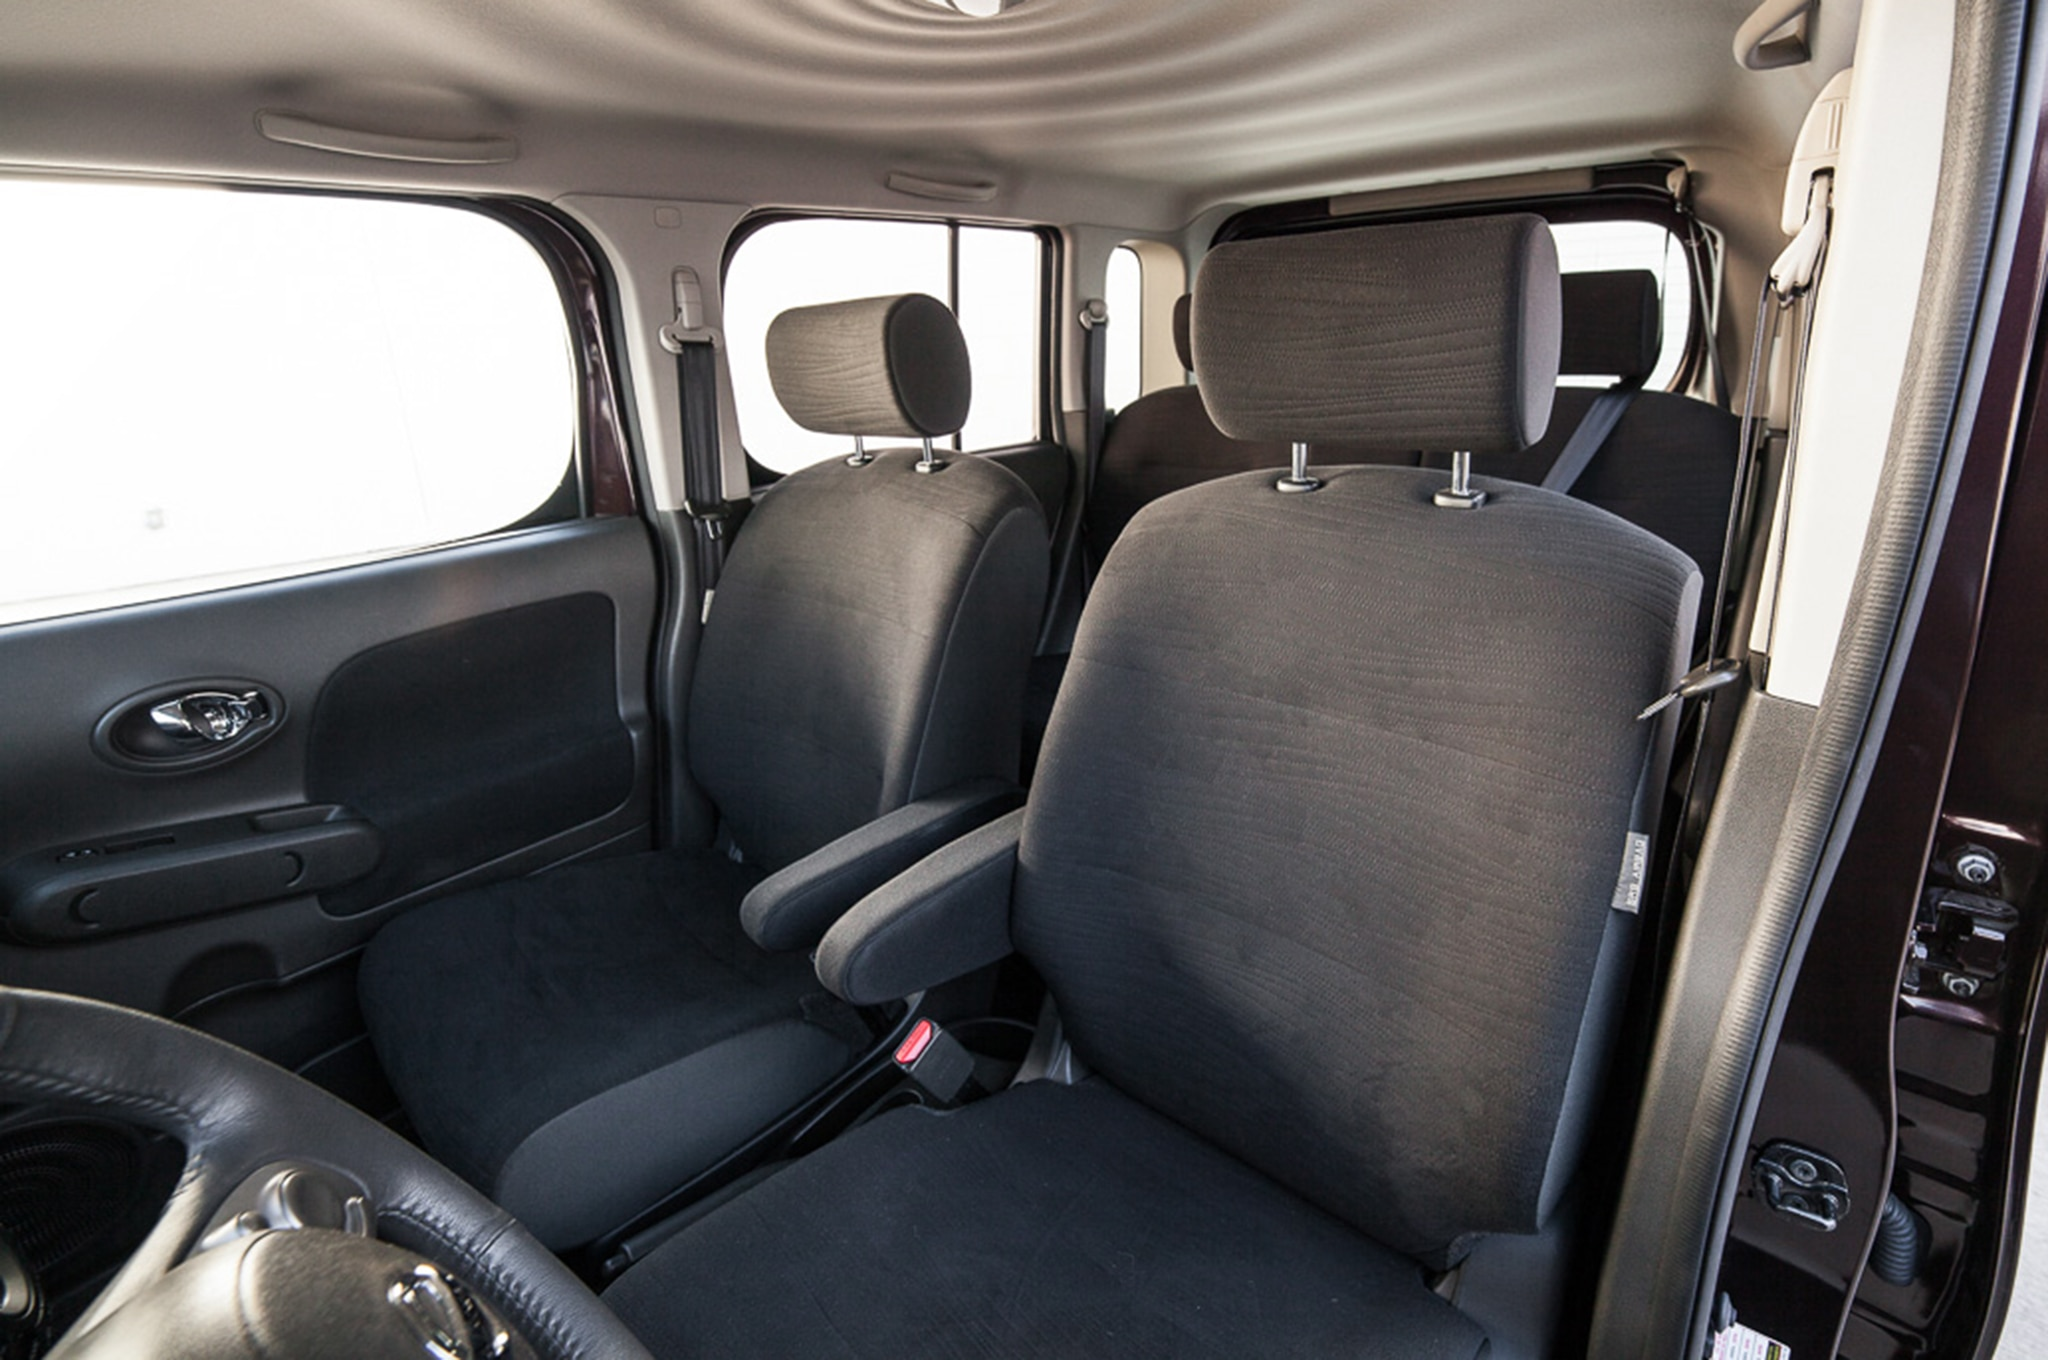 nissan announces prices and changes for 2013 cube 2013 armada 2013 versa sedan. Black Bedroom Furniture Sets. Home Design Ideas